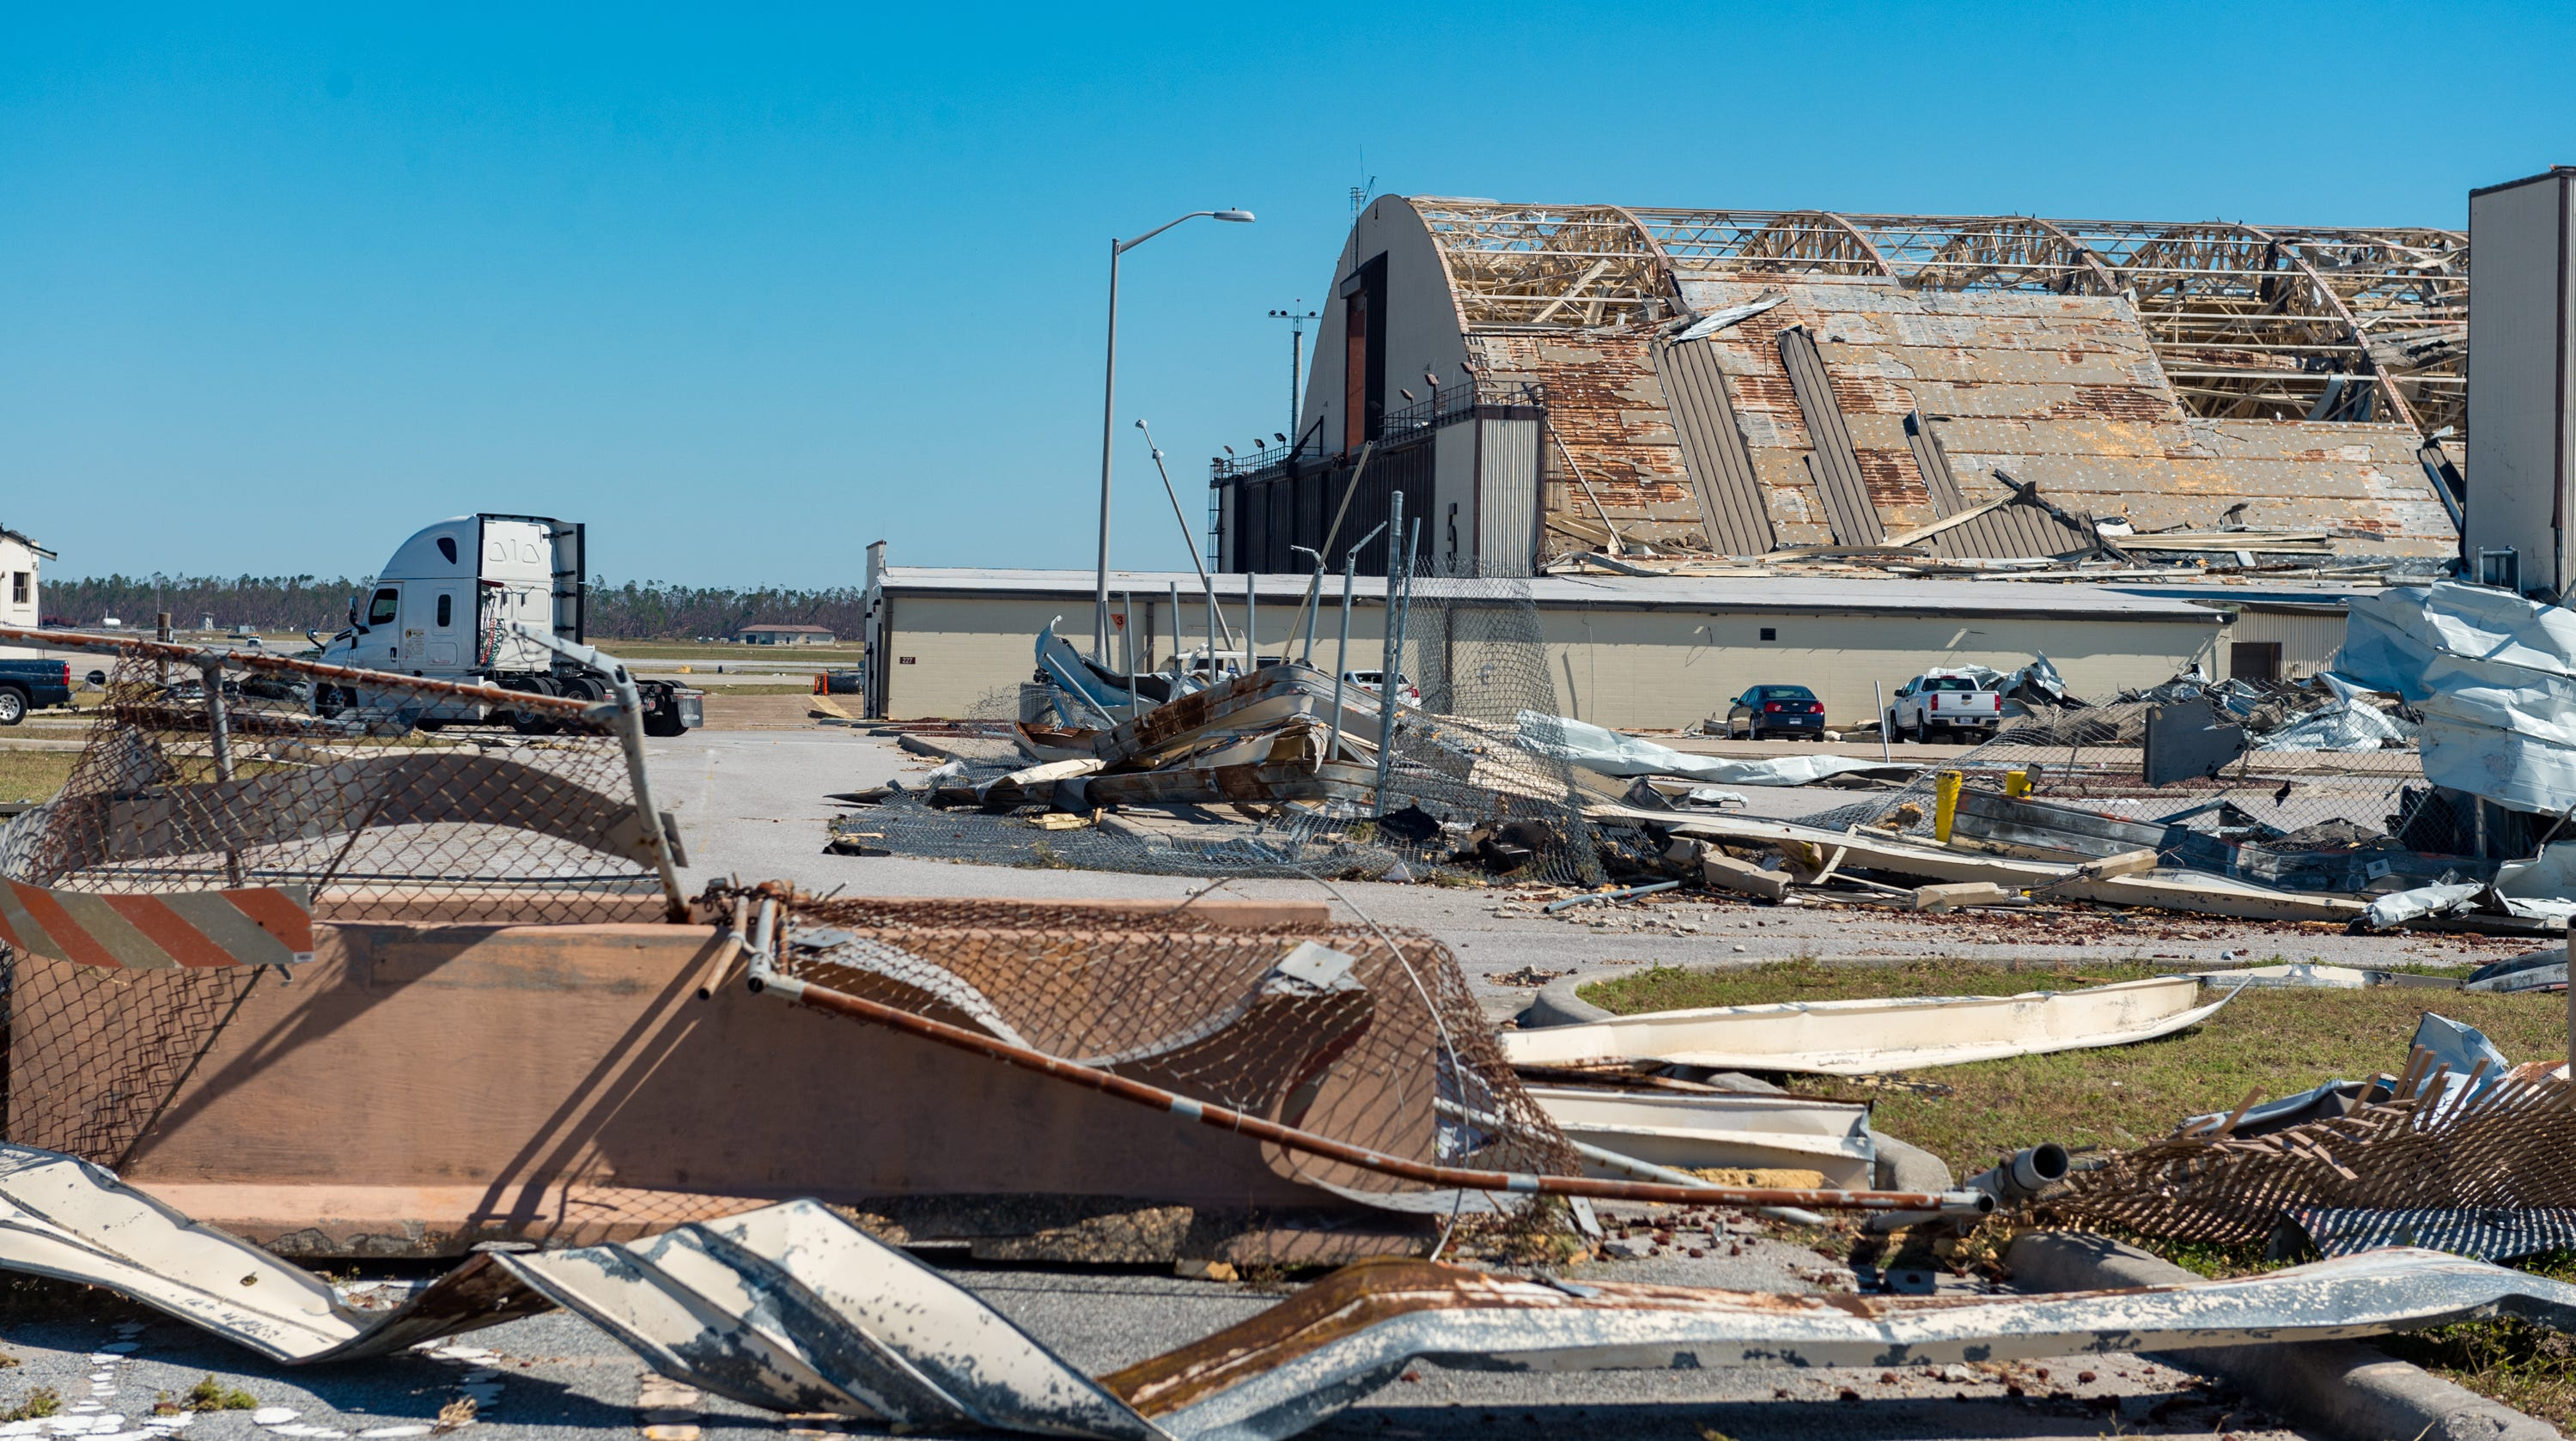 Widespread destruction is left behind in the wake of Hurricane Michael at Tyndall Airforce Base near Panama City, FL.  Saturday, Oct. 13, 2018. (Via OlyDrop)